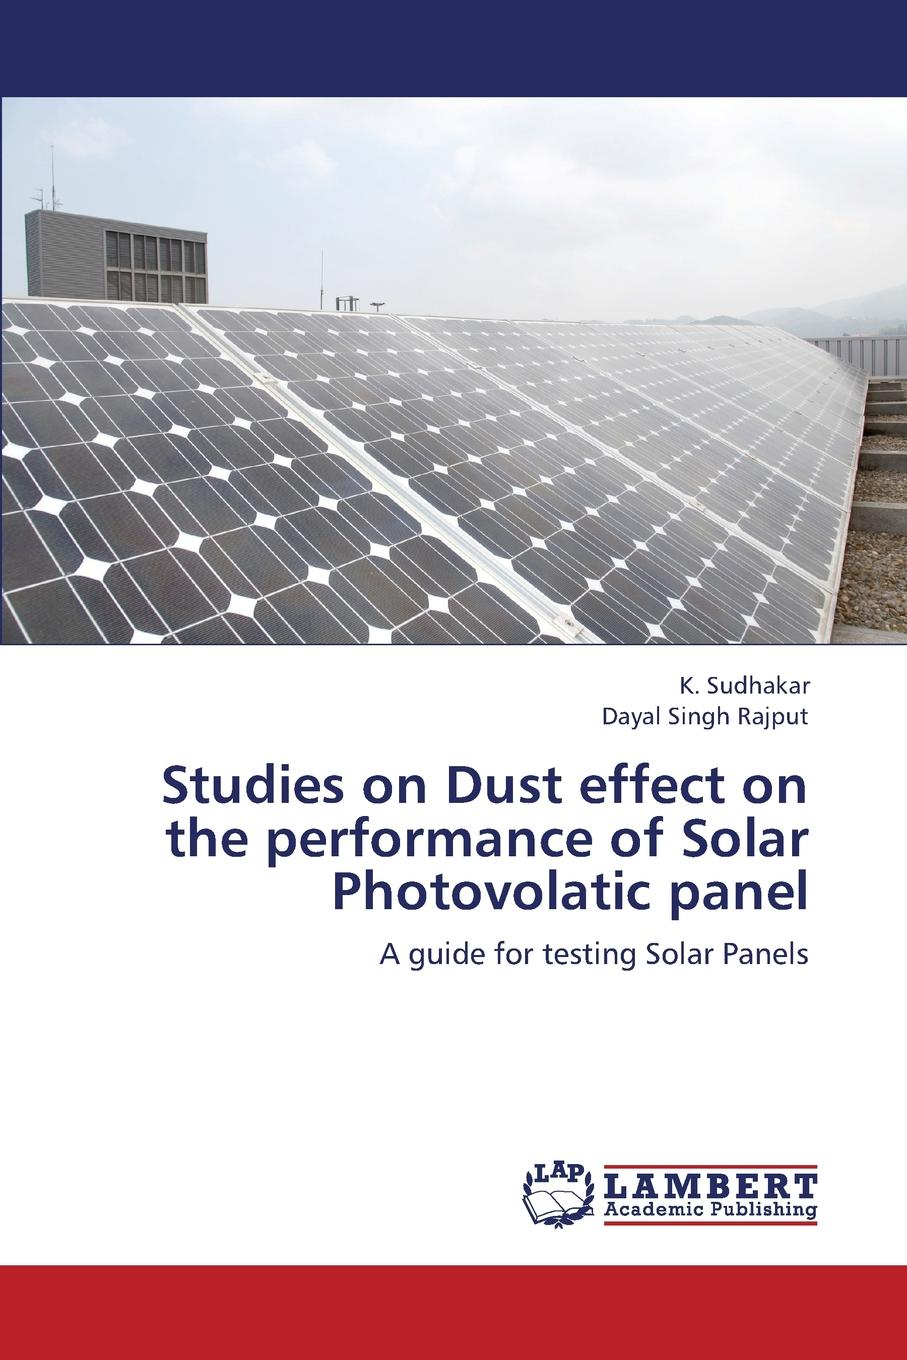 Sudhakar K., Rajput Dayal Singh Studies on Dust effect on the performance of Solar Photovolatic panel jumaah raihan sulaiman new technique for maximum power point tracker on photovoltaic systems